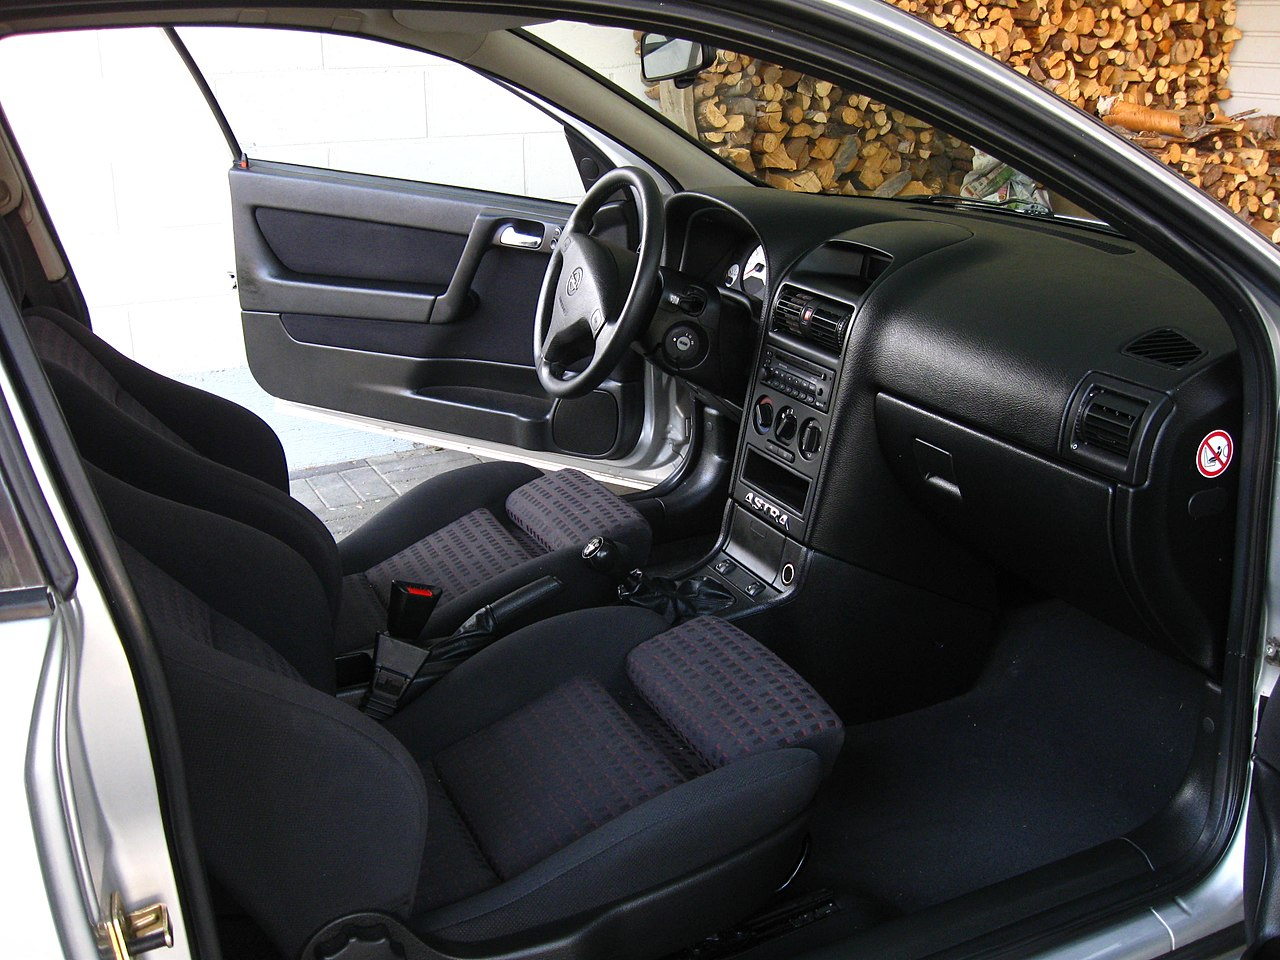 Opel Calibra Interieur File Opel Astra G Interior Jpg Wikimedia Commons